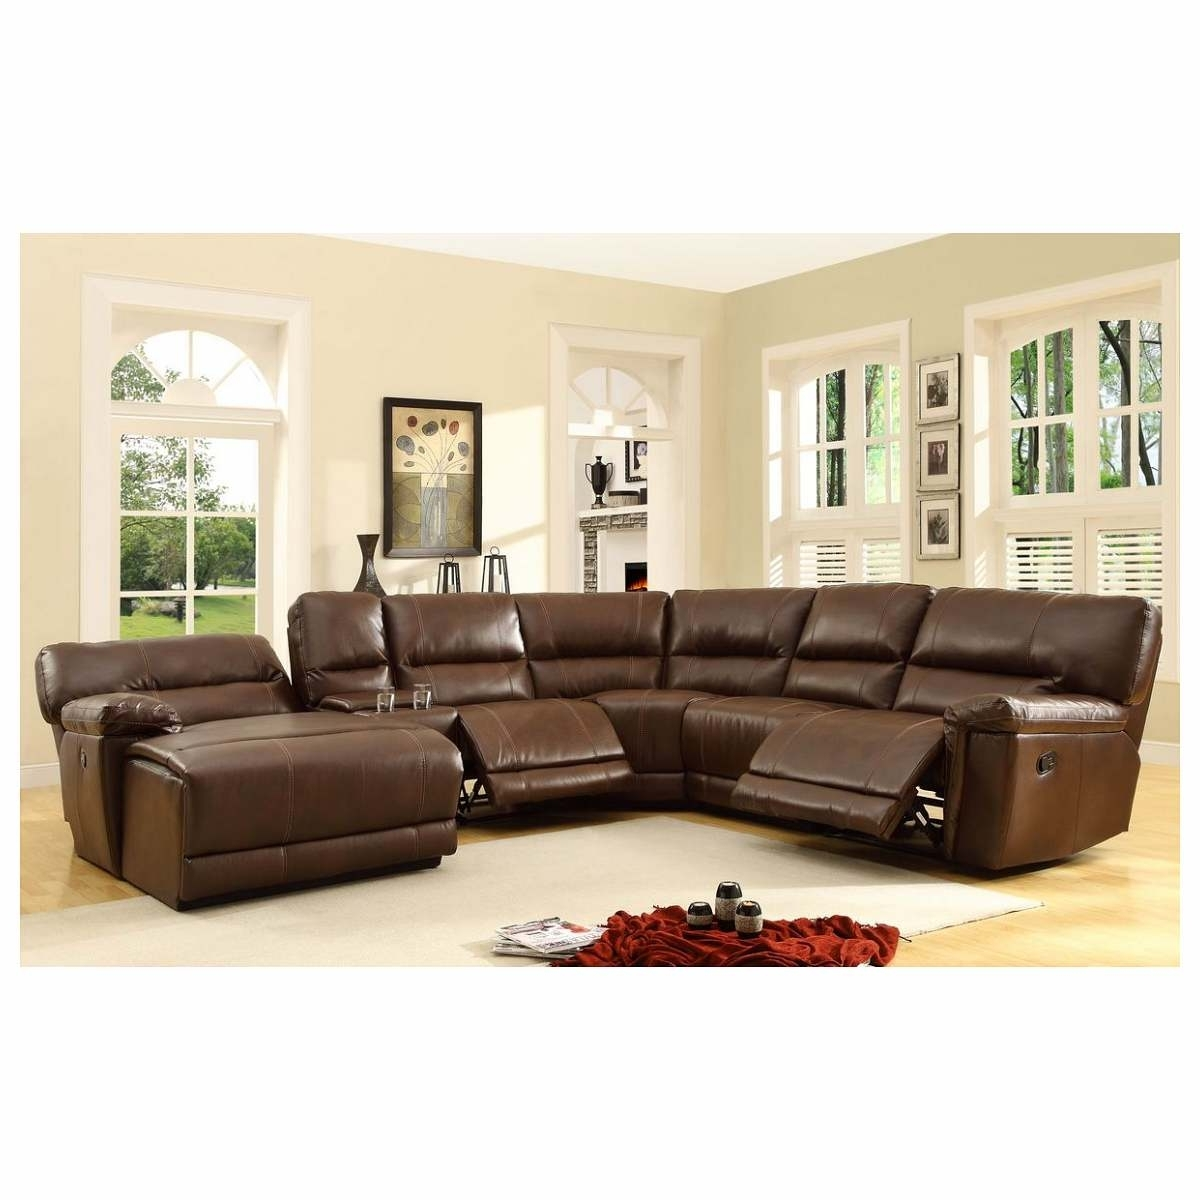 Trendy 6 Pc Blythe Collection Brown Bonded Leather Match Upholstered Within 6 Piece Leather Sectional Sofas (View 6 of 20)